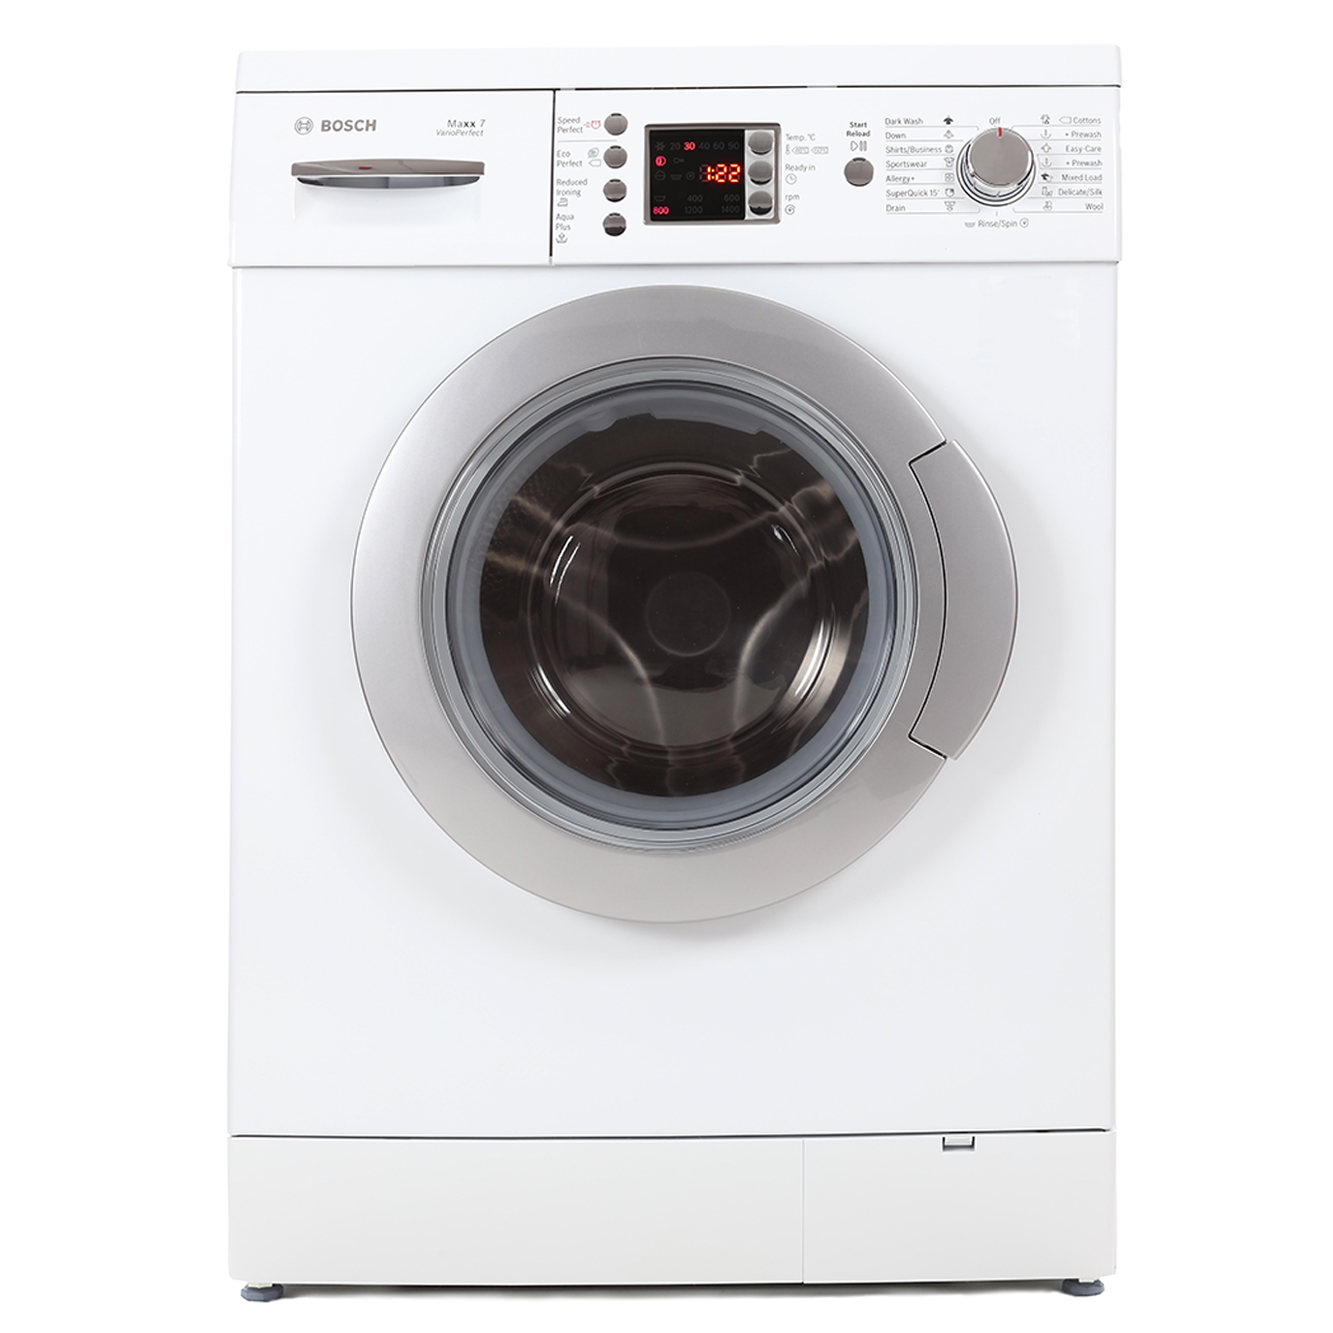 buy bosch maxx 7 varioperfect wae28490gb washing machine. Black Bedroom Furniture Sets. Home Design Ideas